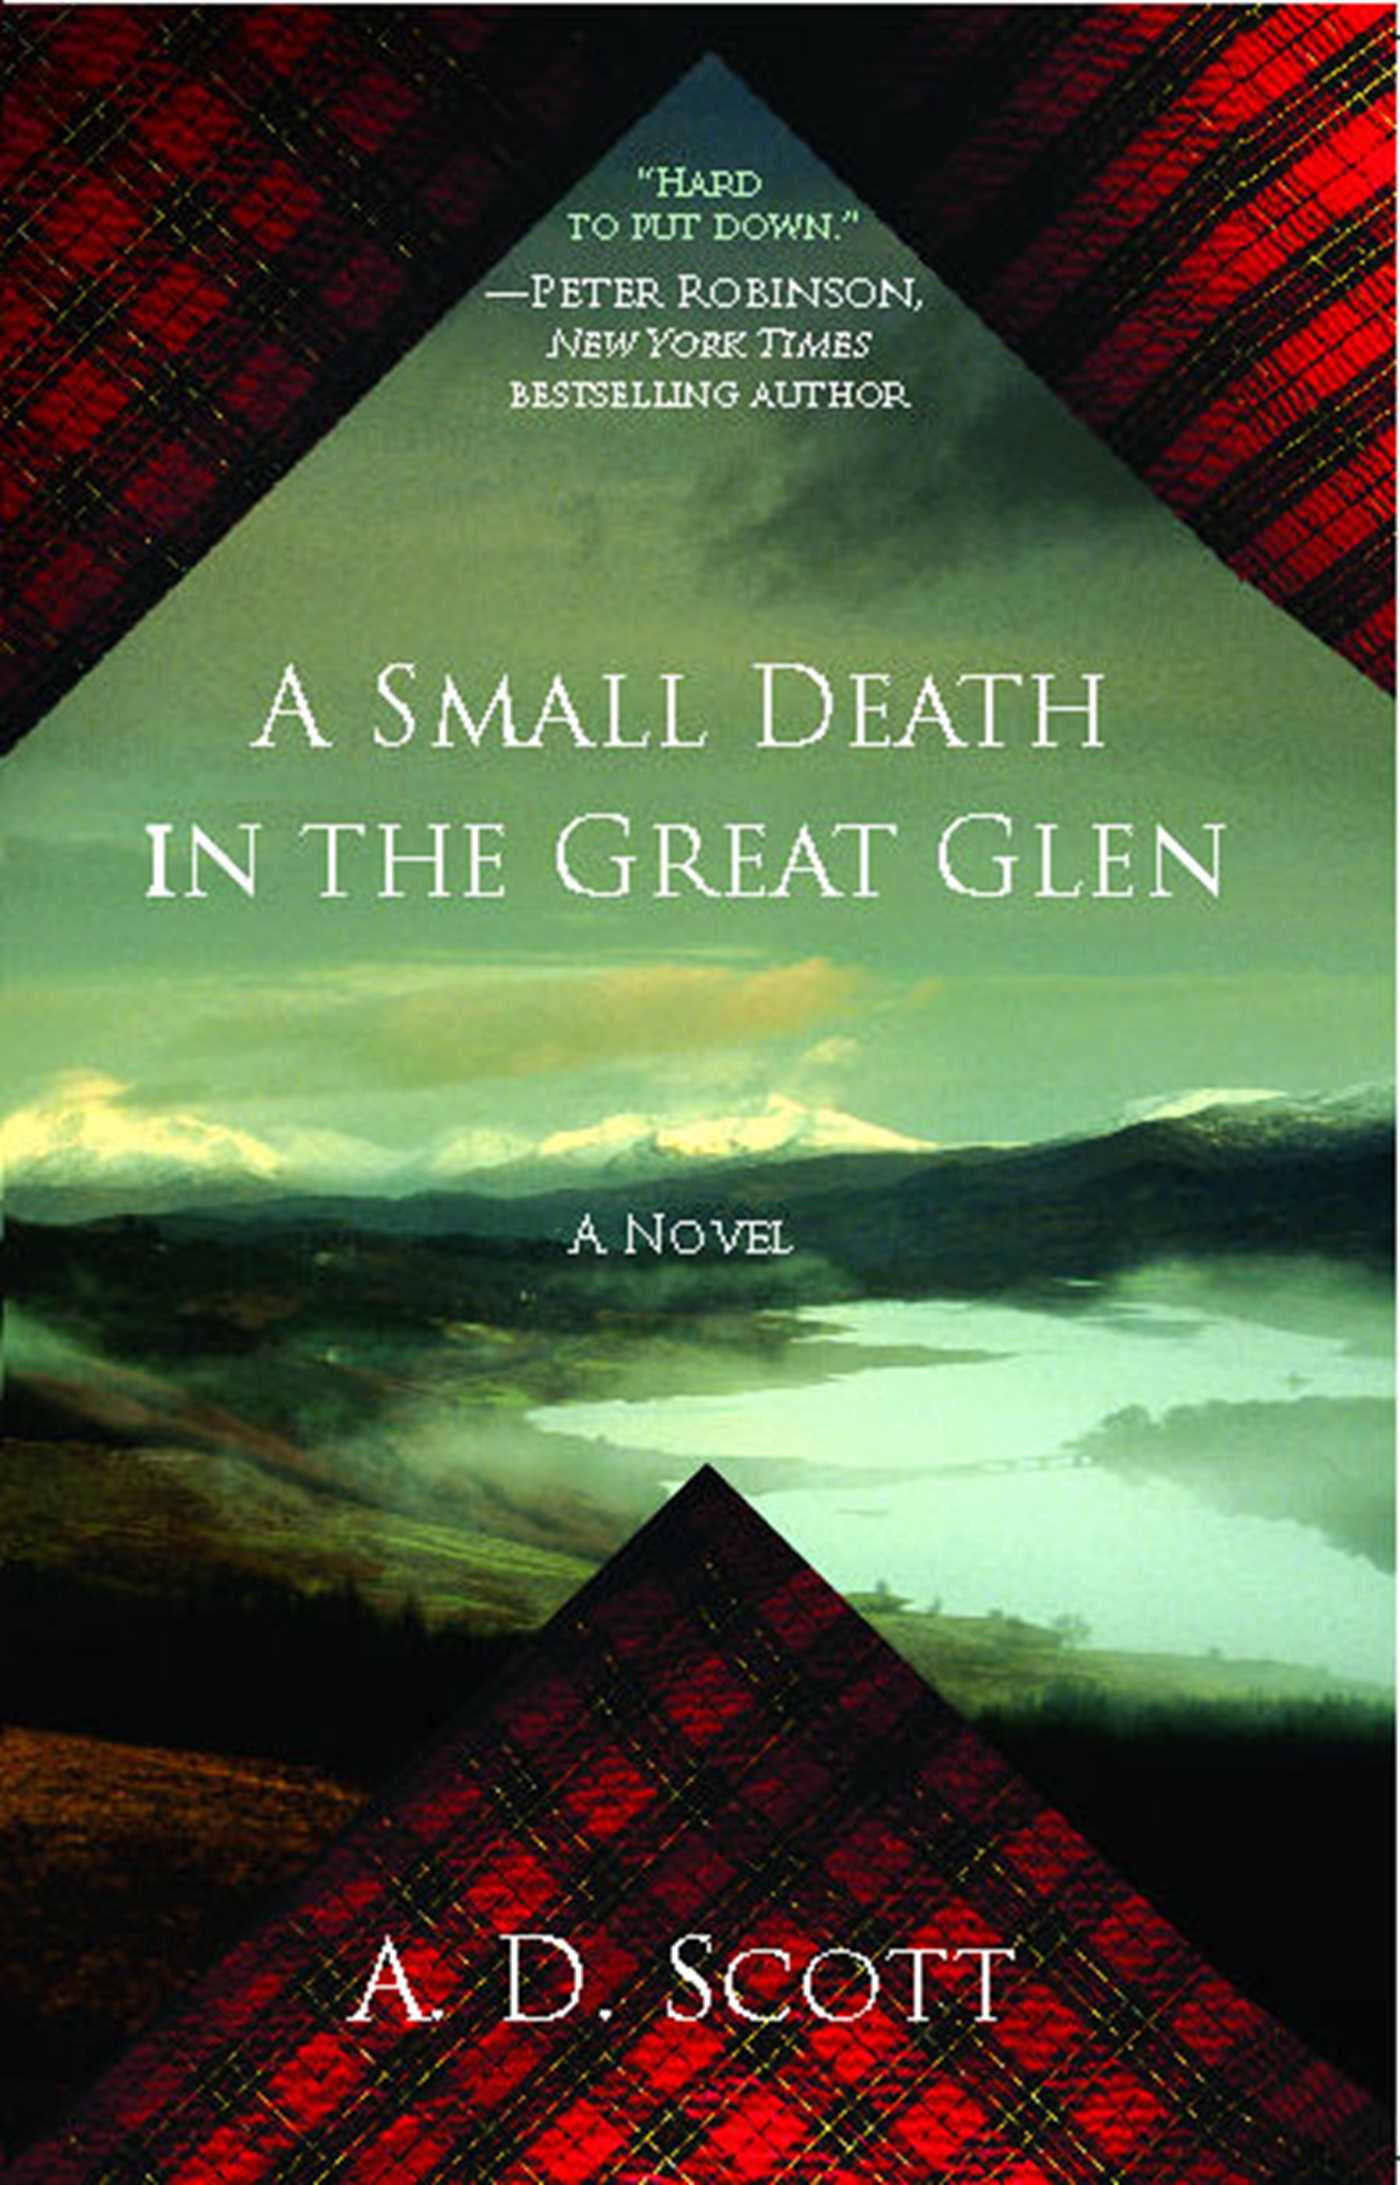 A-small-death-in-the-great-glen-9781439164839_hr